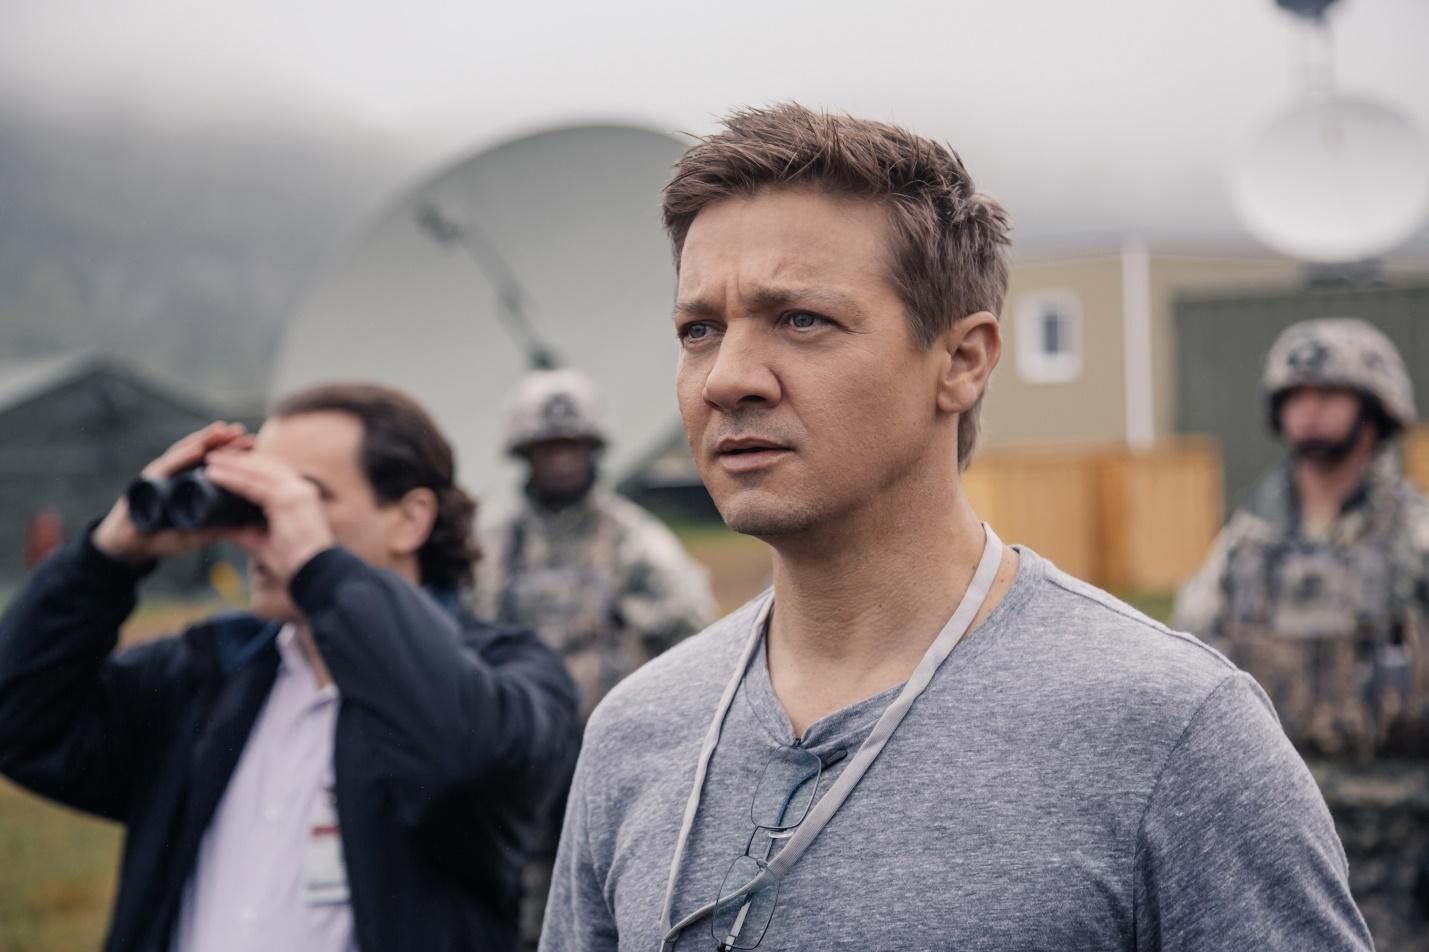 http://www.blastr.com/sites/blastr/files/Arrival-Jeremy-Renner_0.jpg